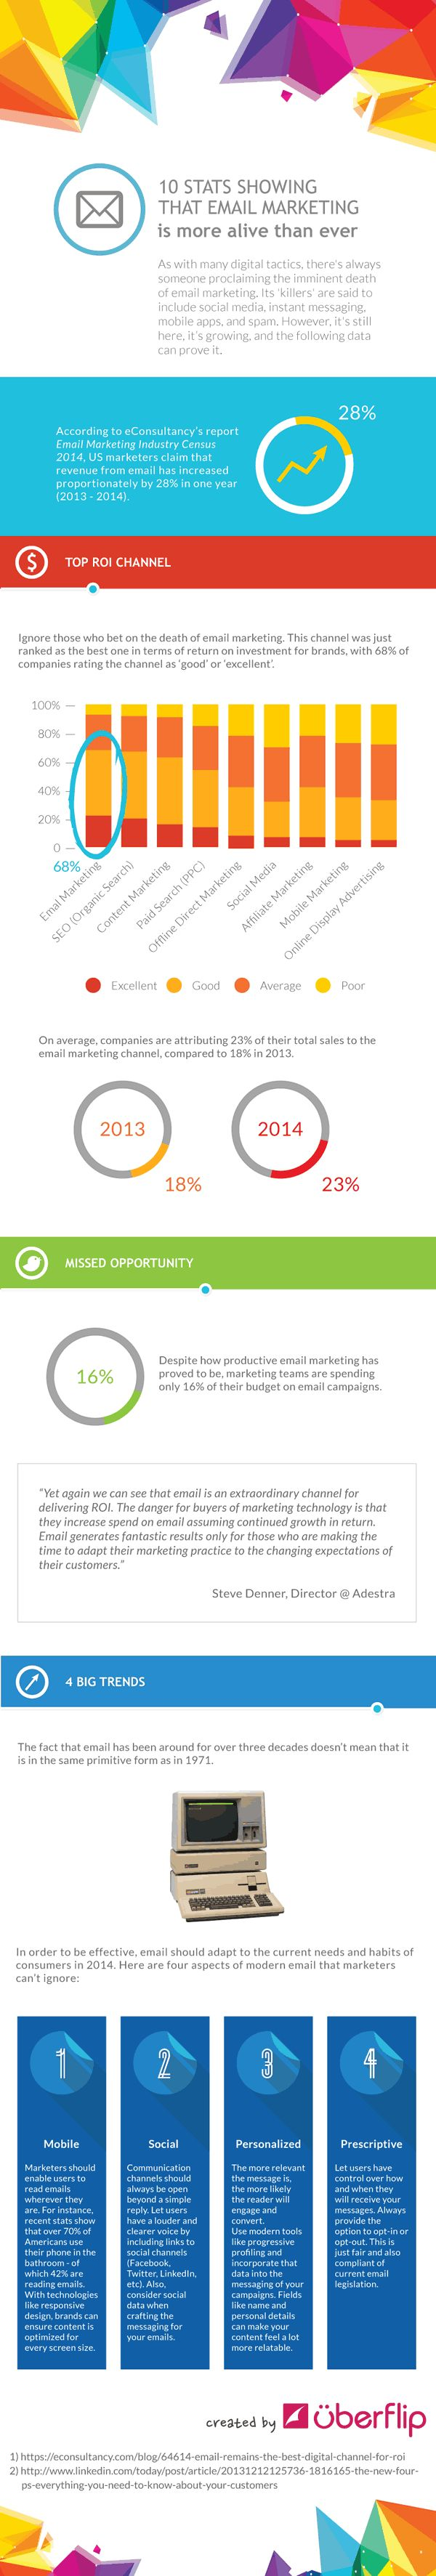 View mobile site about digitalbuyer com affiliate program site map - Email Marketing Alive And Well Infographic By Uberflip